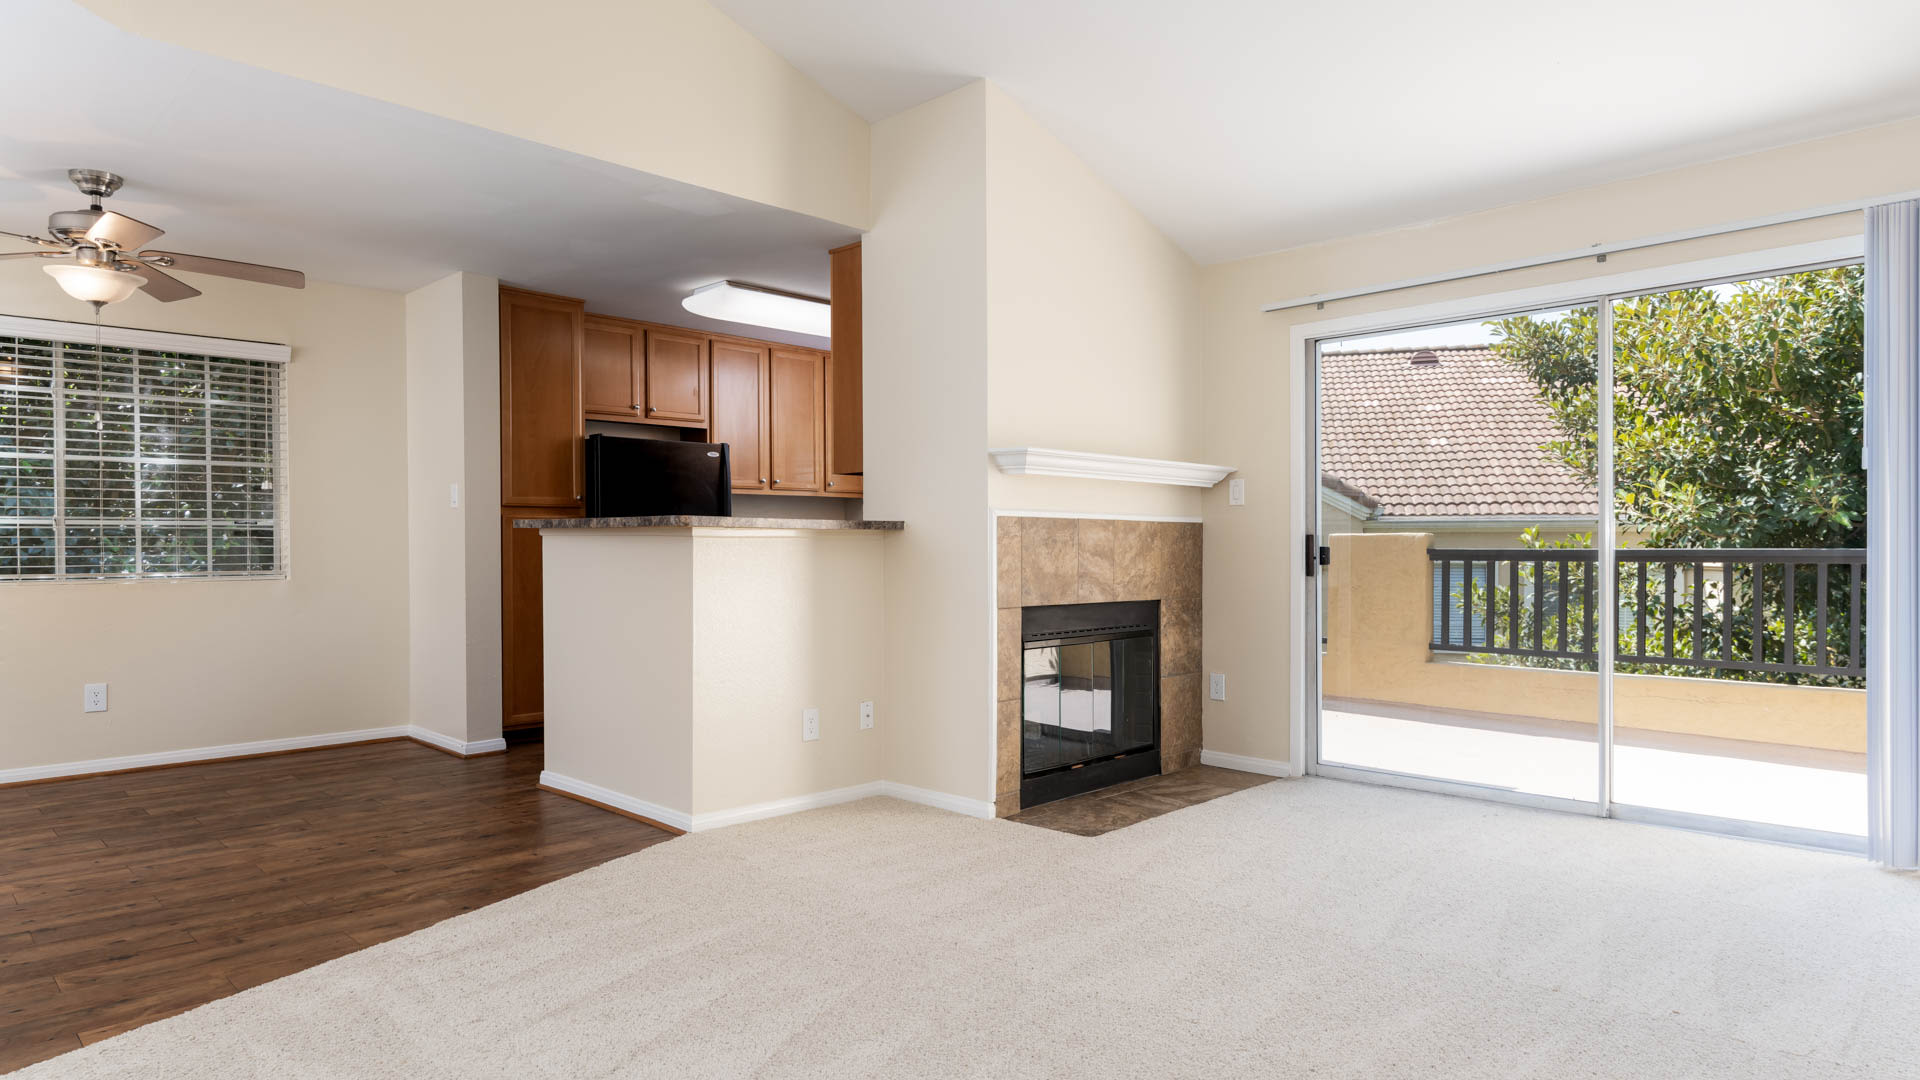 Deerwood Apartments - Living Area with Fireplace and Balcony